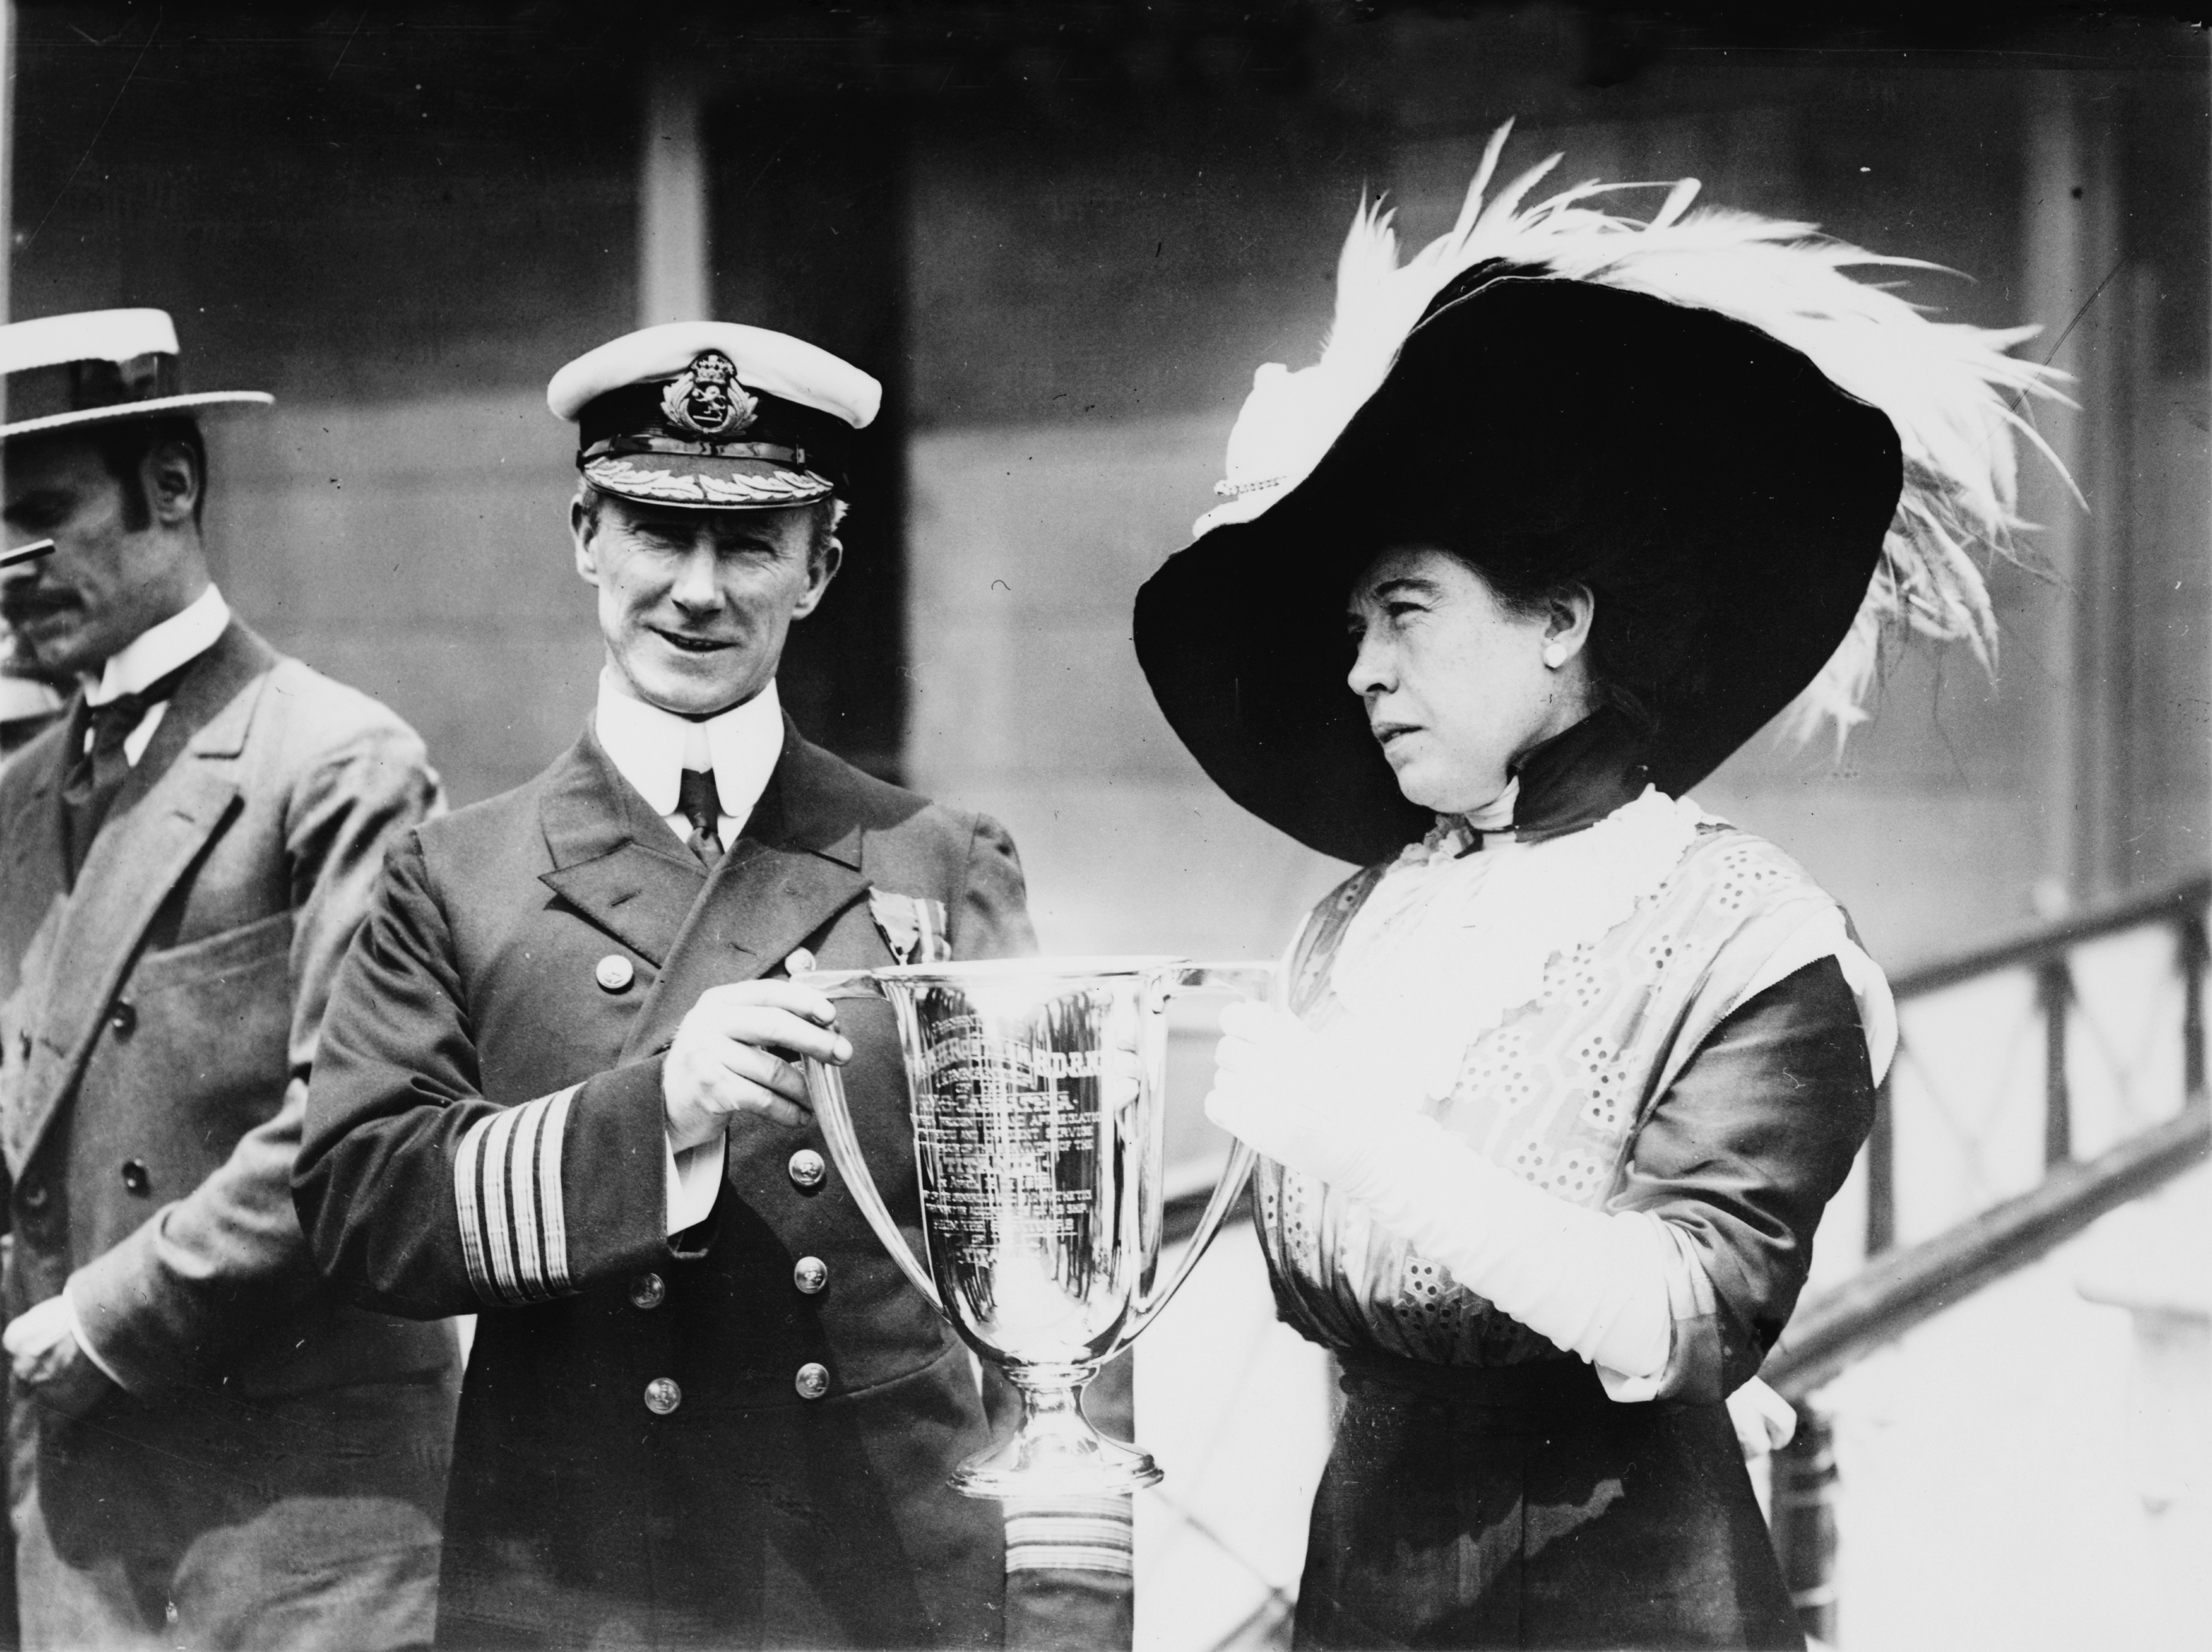 Description Molly brown rescue award titanic.jpg